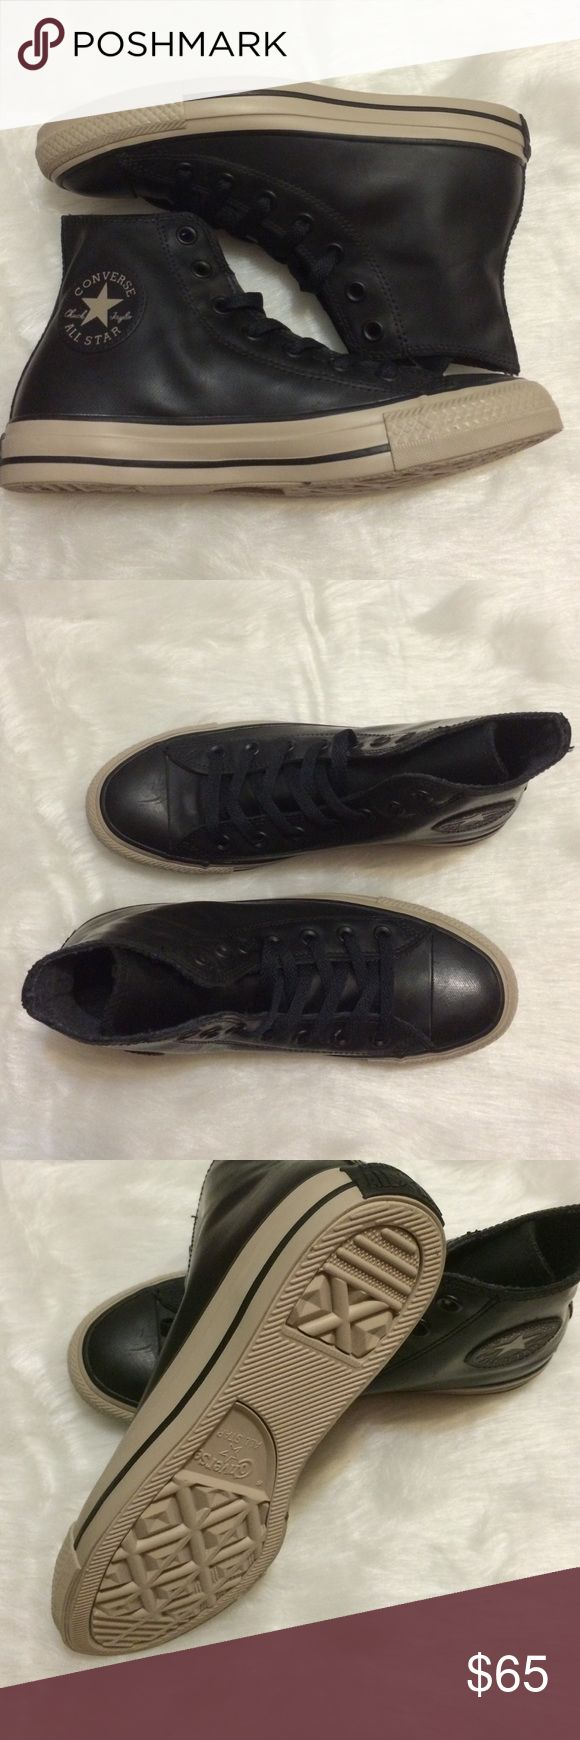 Converse women's size 7 black Chuck Taylor's Brand new. Size 7. Converse Shoes Athletic Shoes